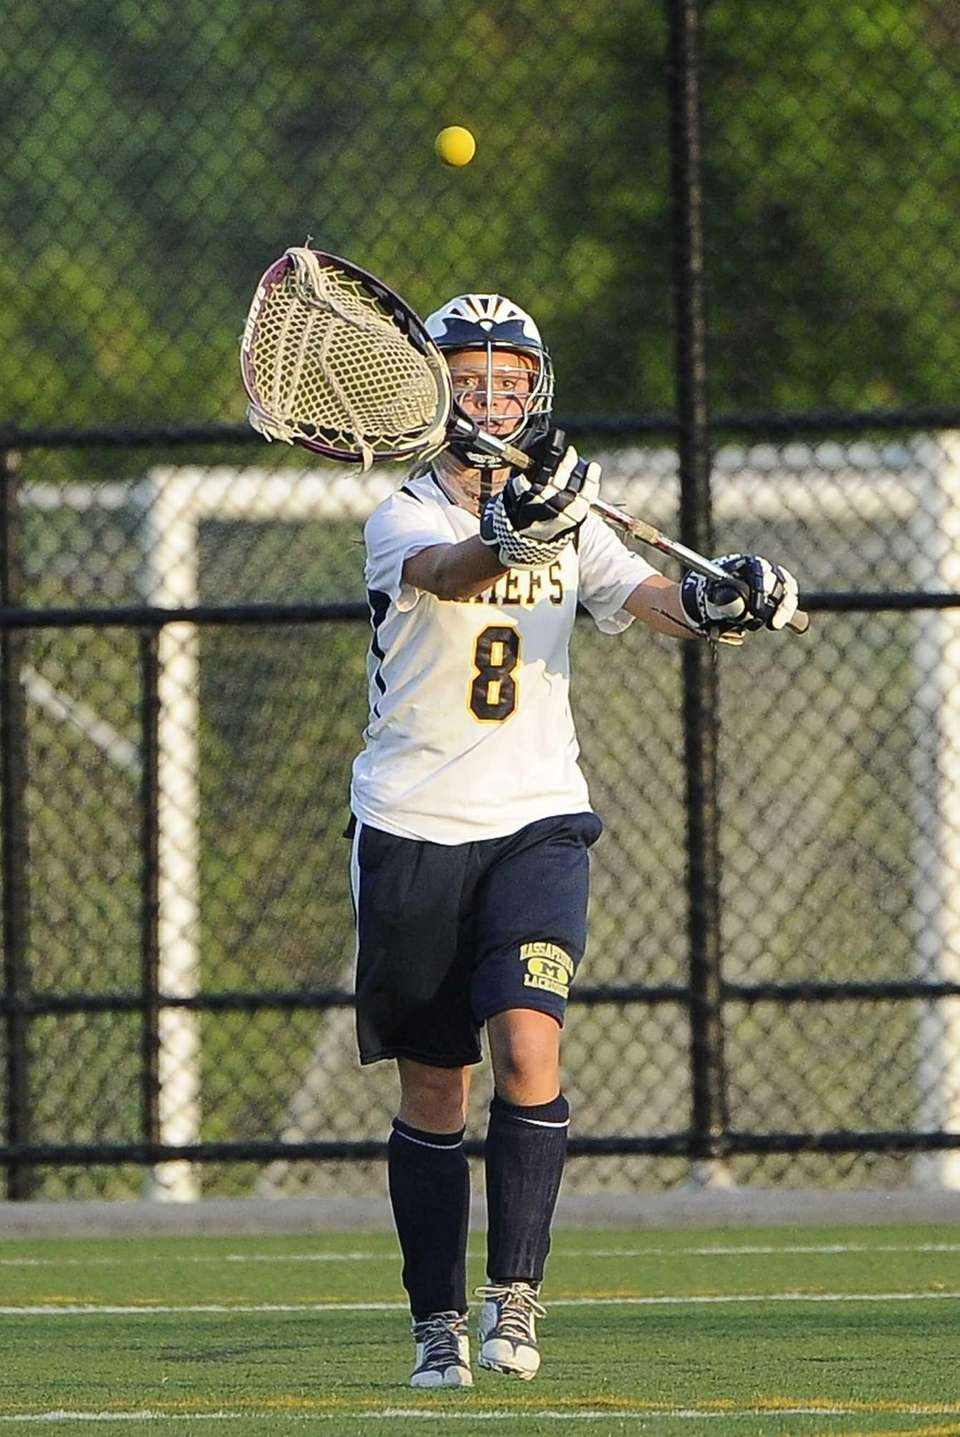 Massapequa goalie Samantha DePasquale clears the ball against